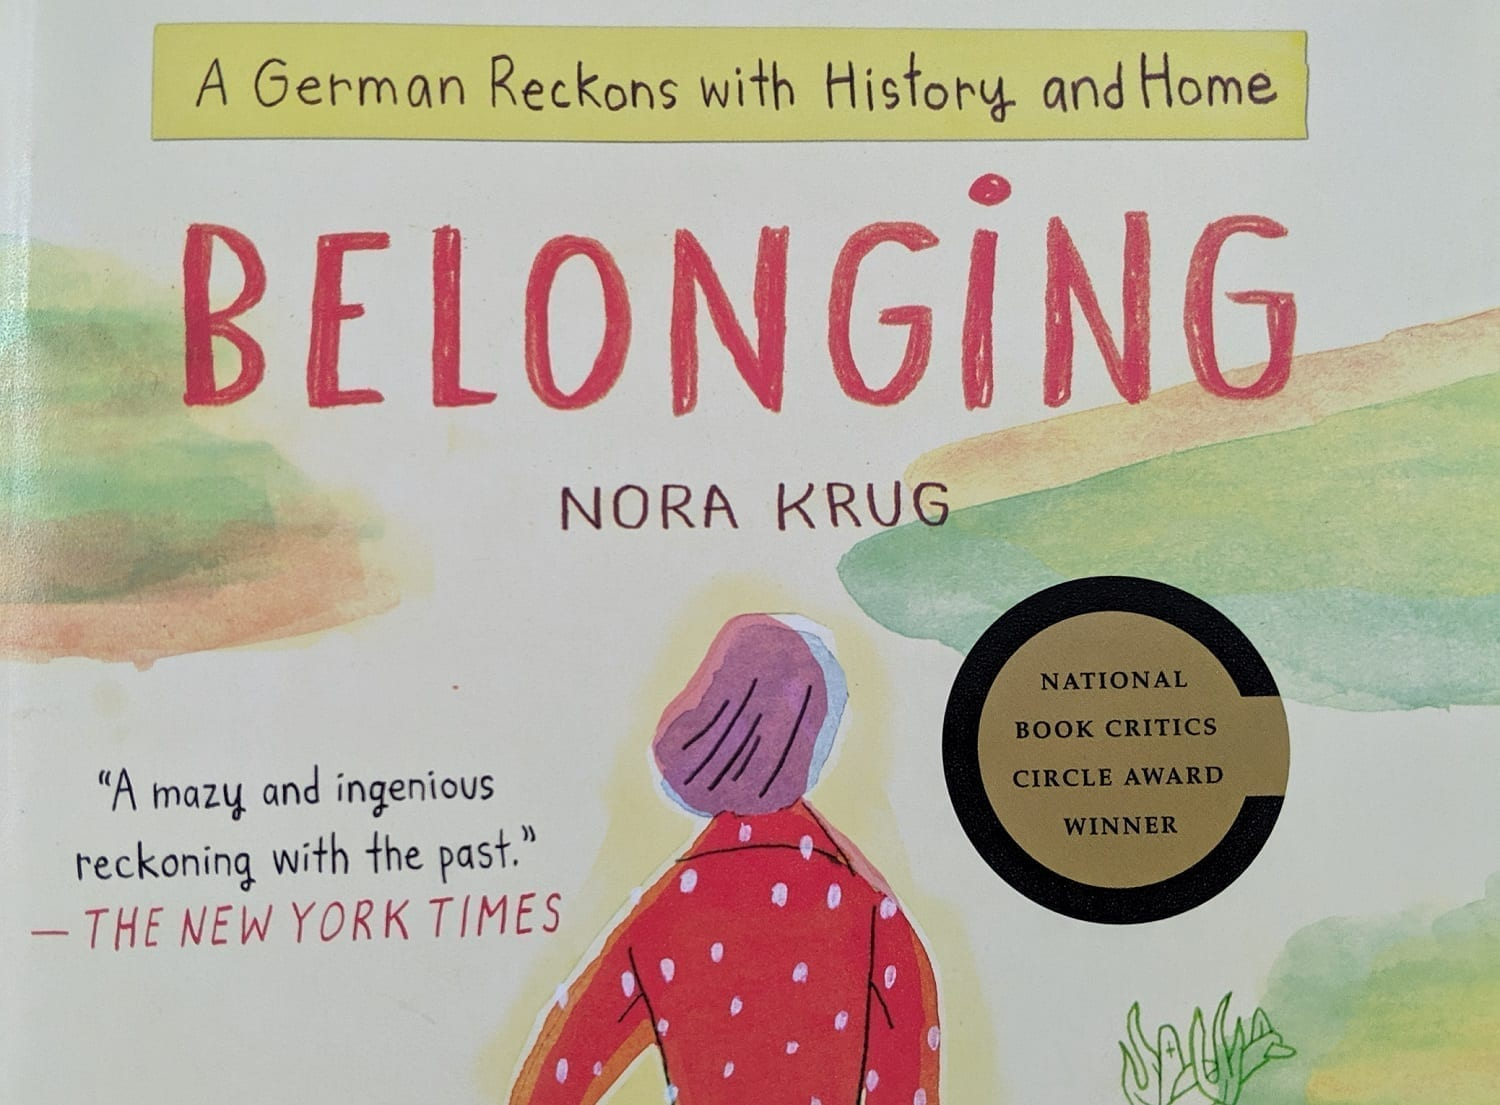 Belonging by Nora Krug – A German Reckons with History and Home